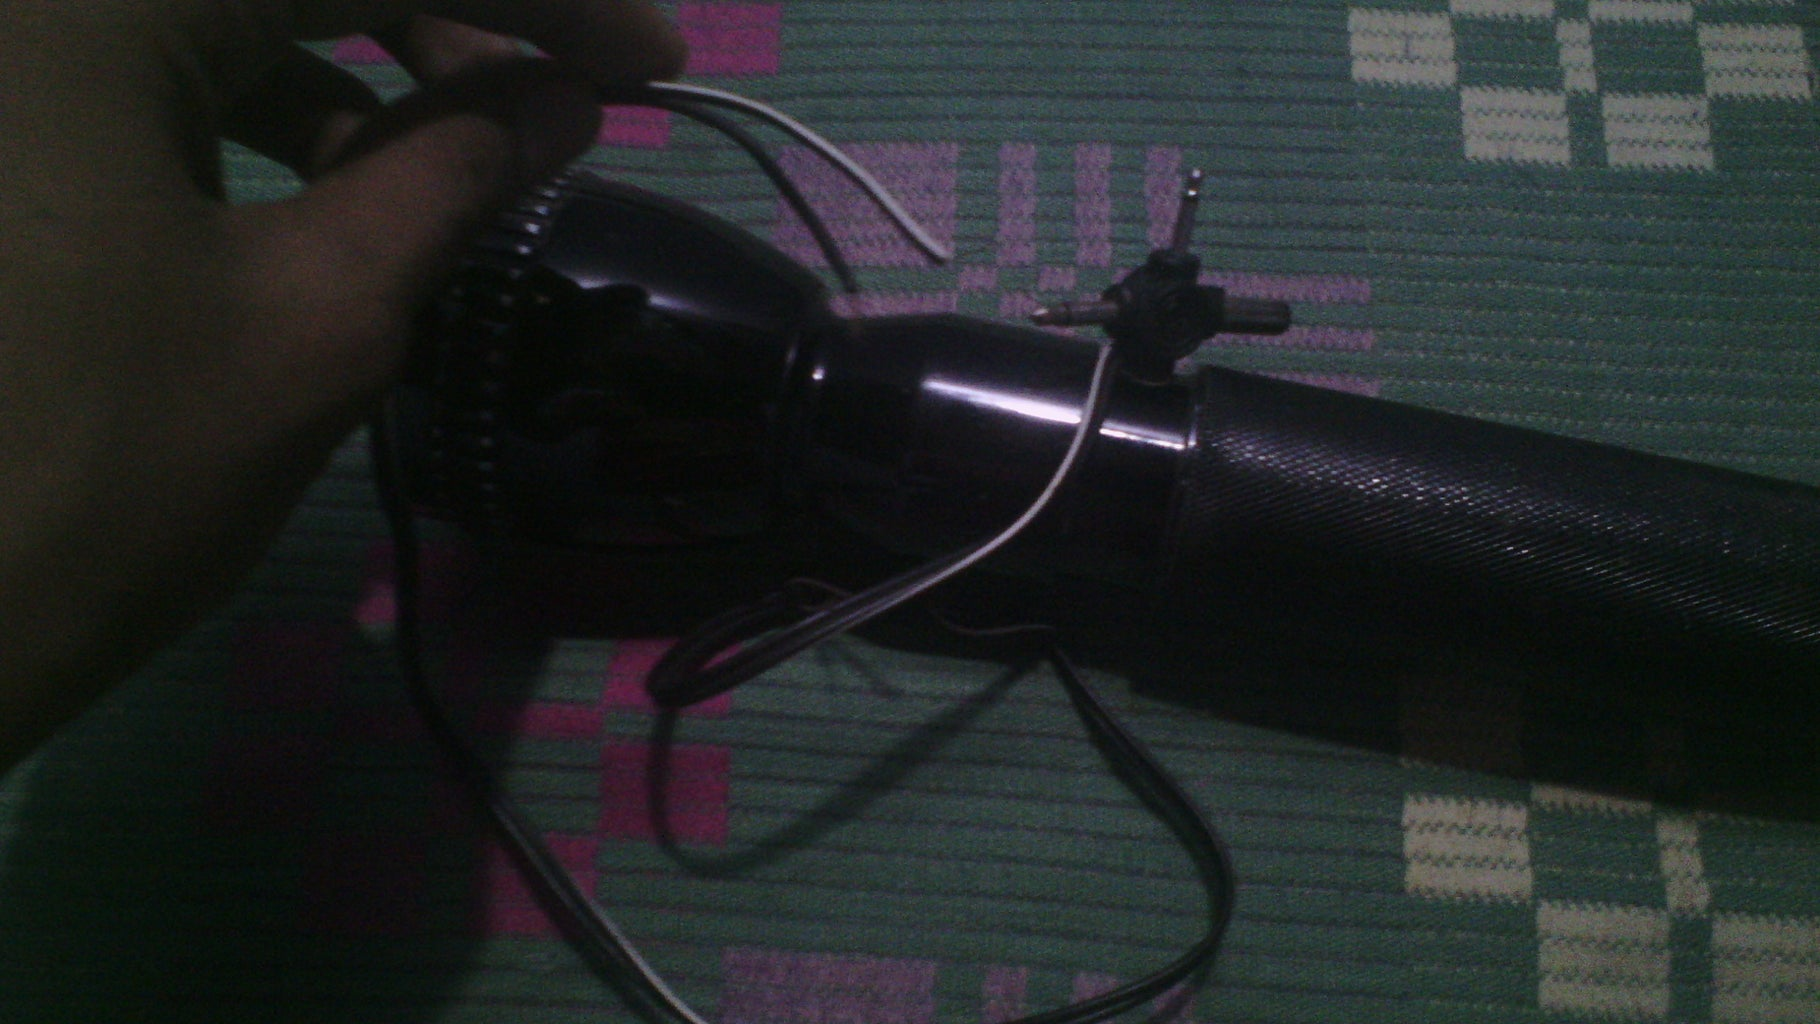 Battery Charger With Torch Light